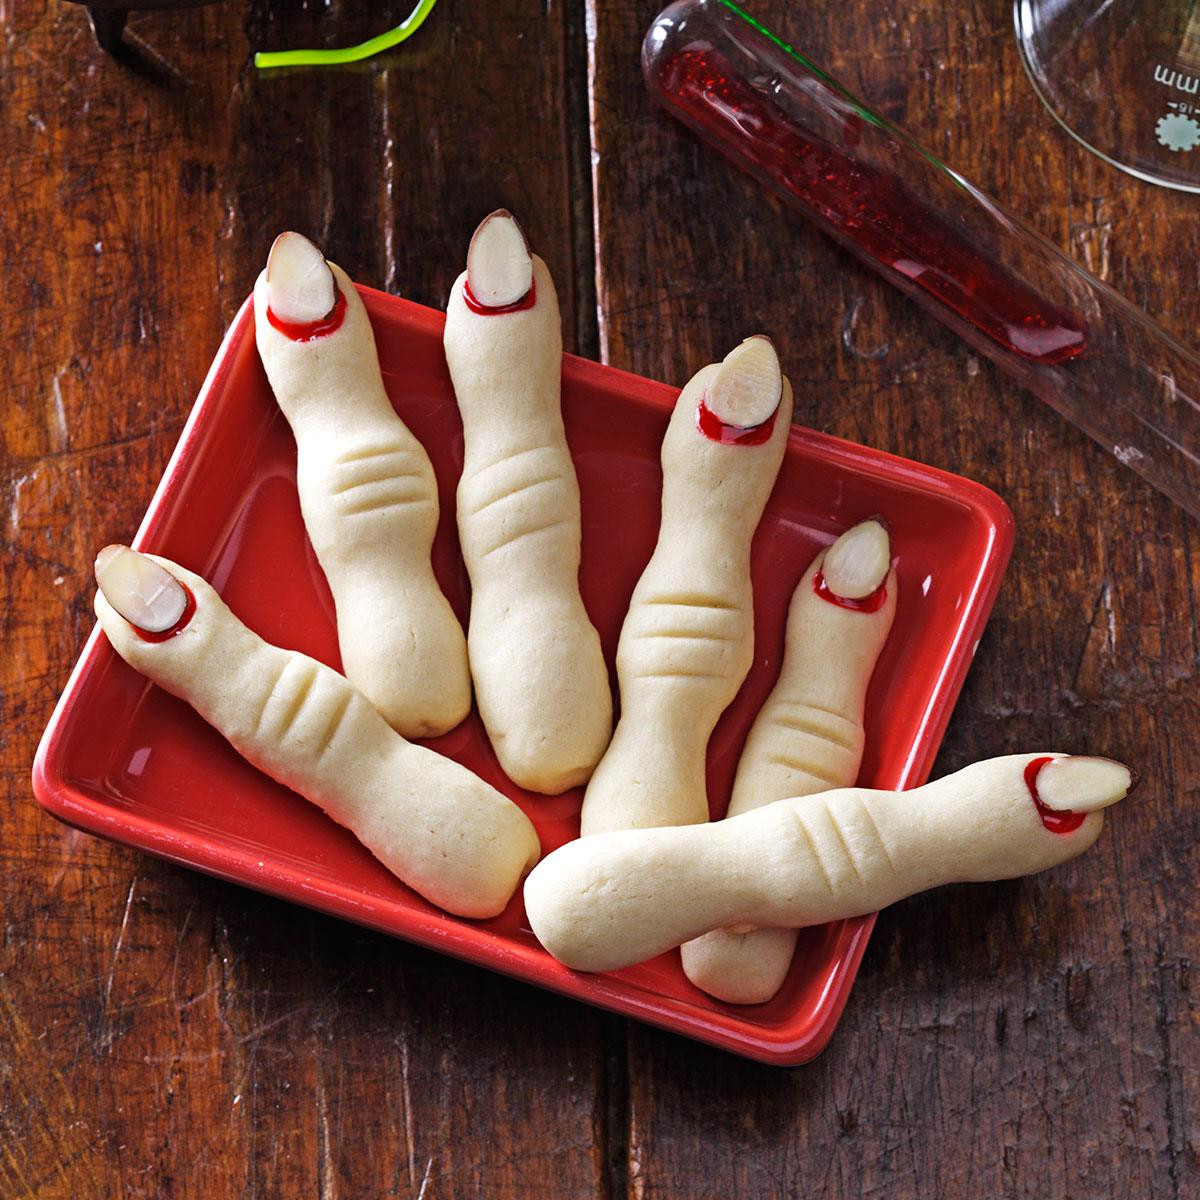 Fingers Cookies Halloween  Frightening Fingers Recipe